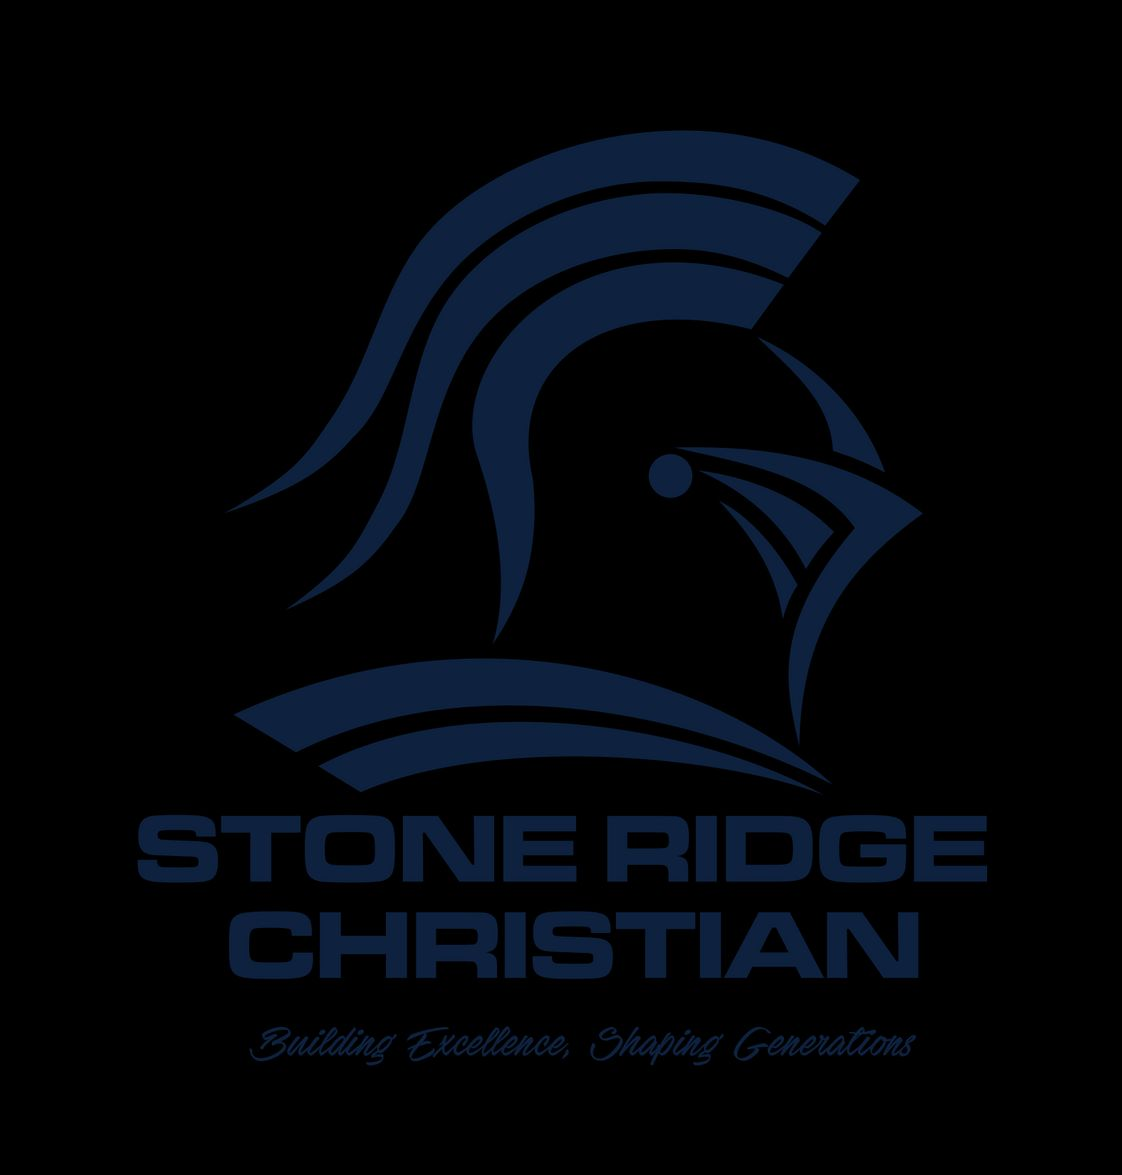 Stone Ridge Christian Elementary School Photo - We are a PK-5th grade campus of a PK-12th grade school. We are a Christian School whose goal is to be Christ-Centered and Student-Focused in all that we do.